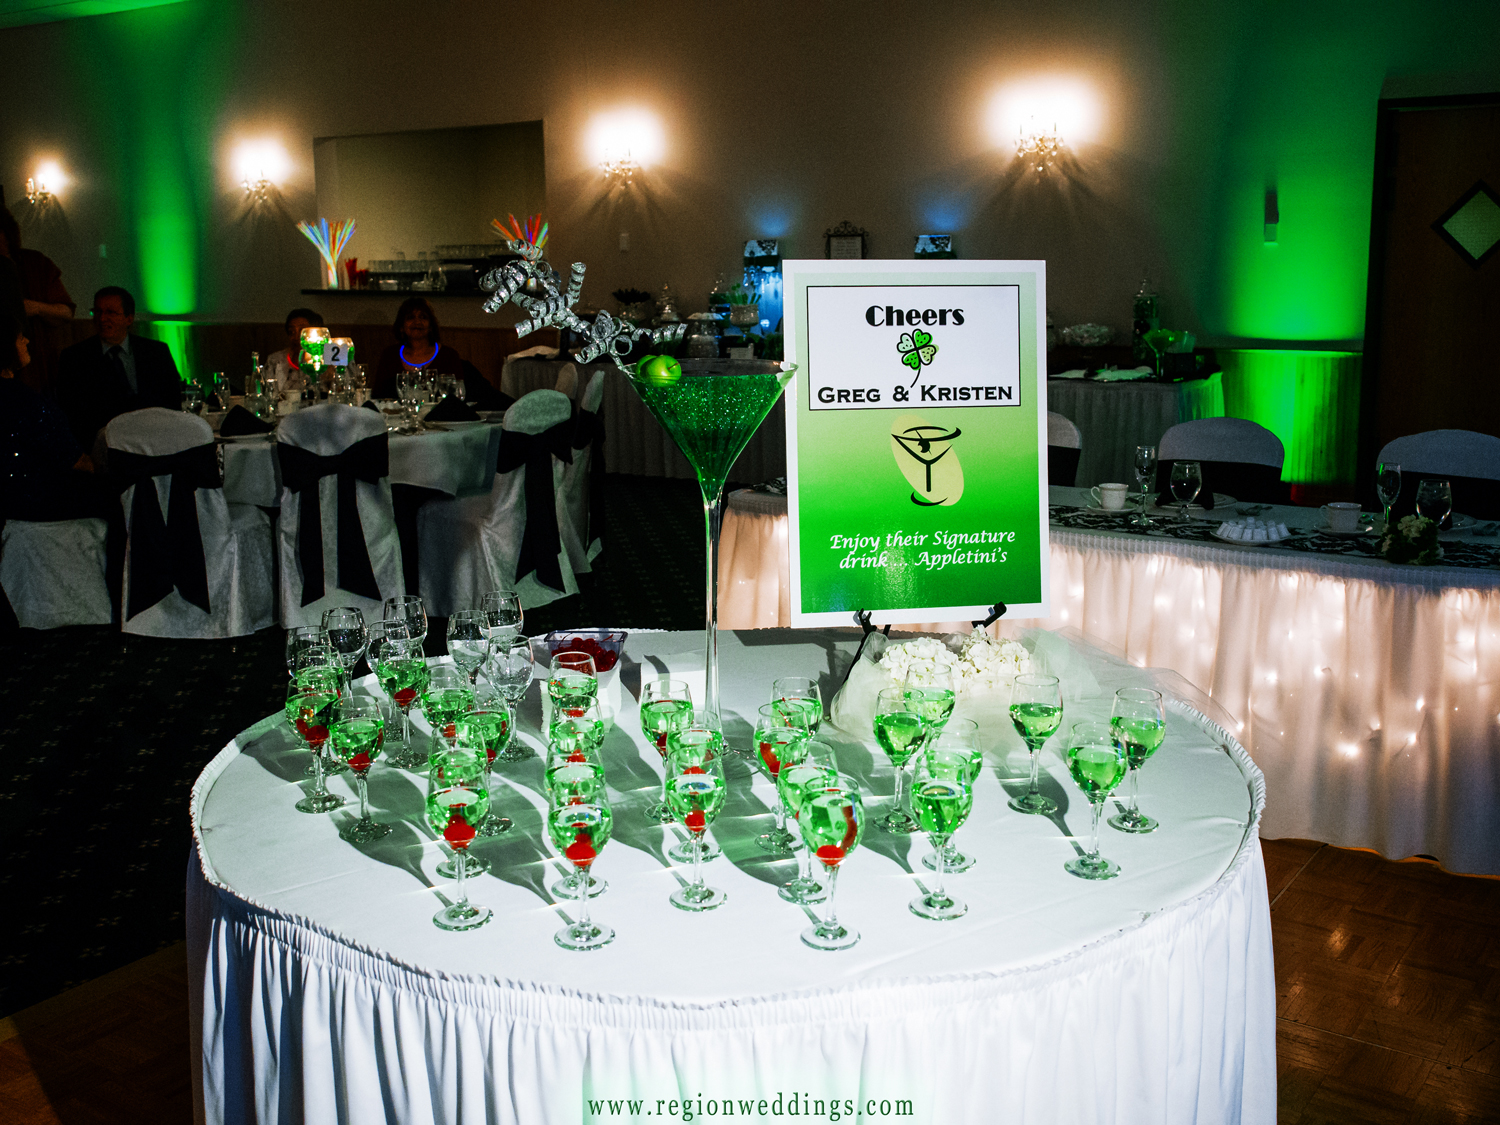 A table of green apple martinis greet guests at a winter wedding reception at The Patrician in Schererville, Indiana.